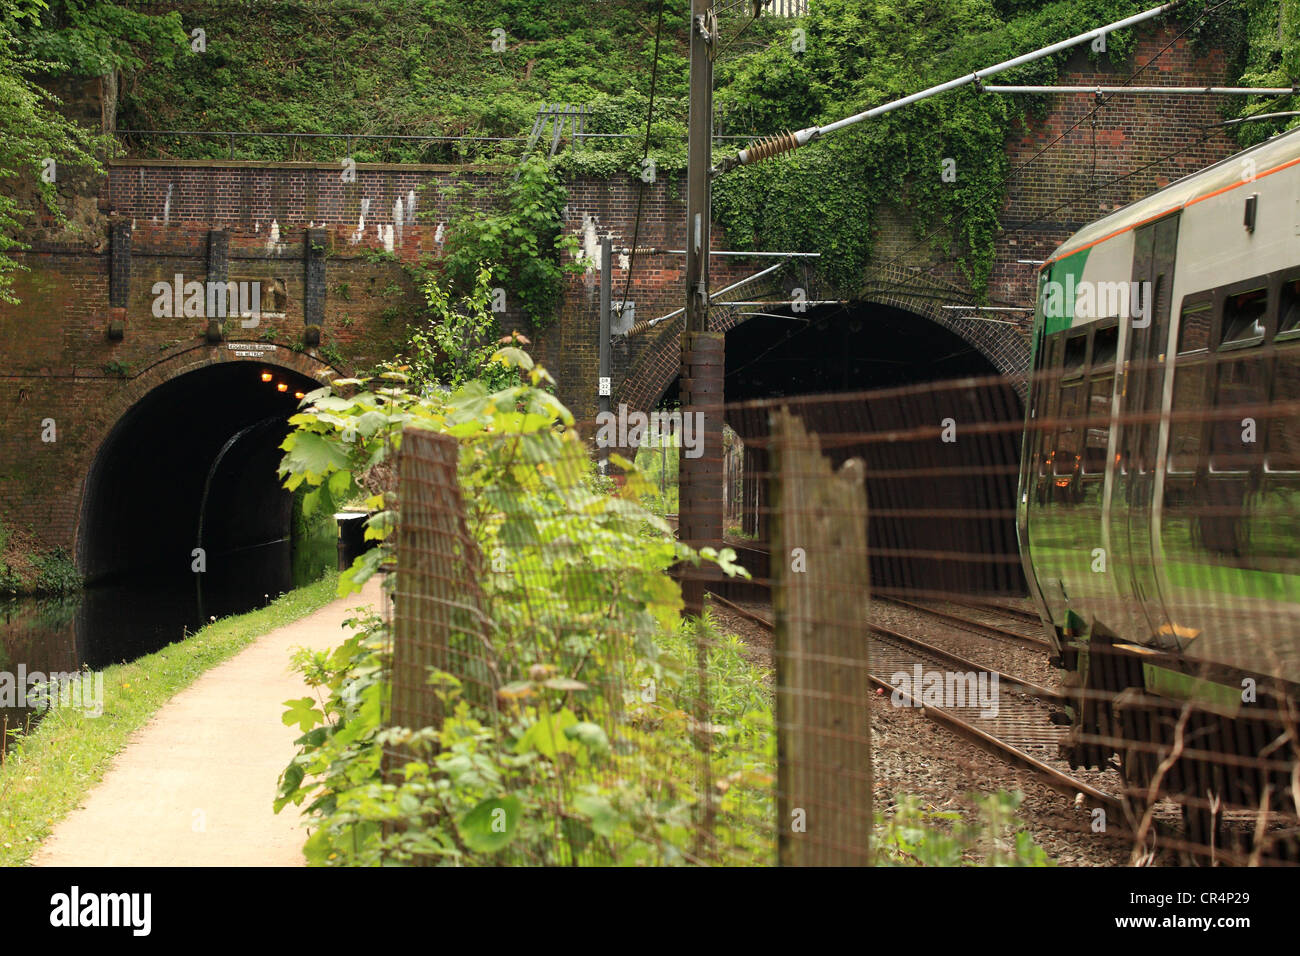 a bridge crossing a railway and a canal and a train approaching one of the bridge arches Stock Photo